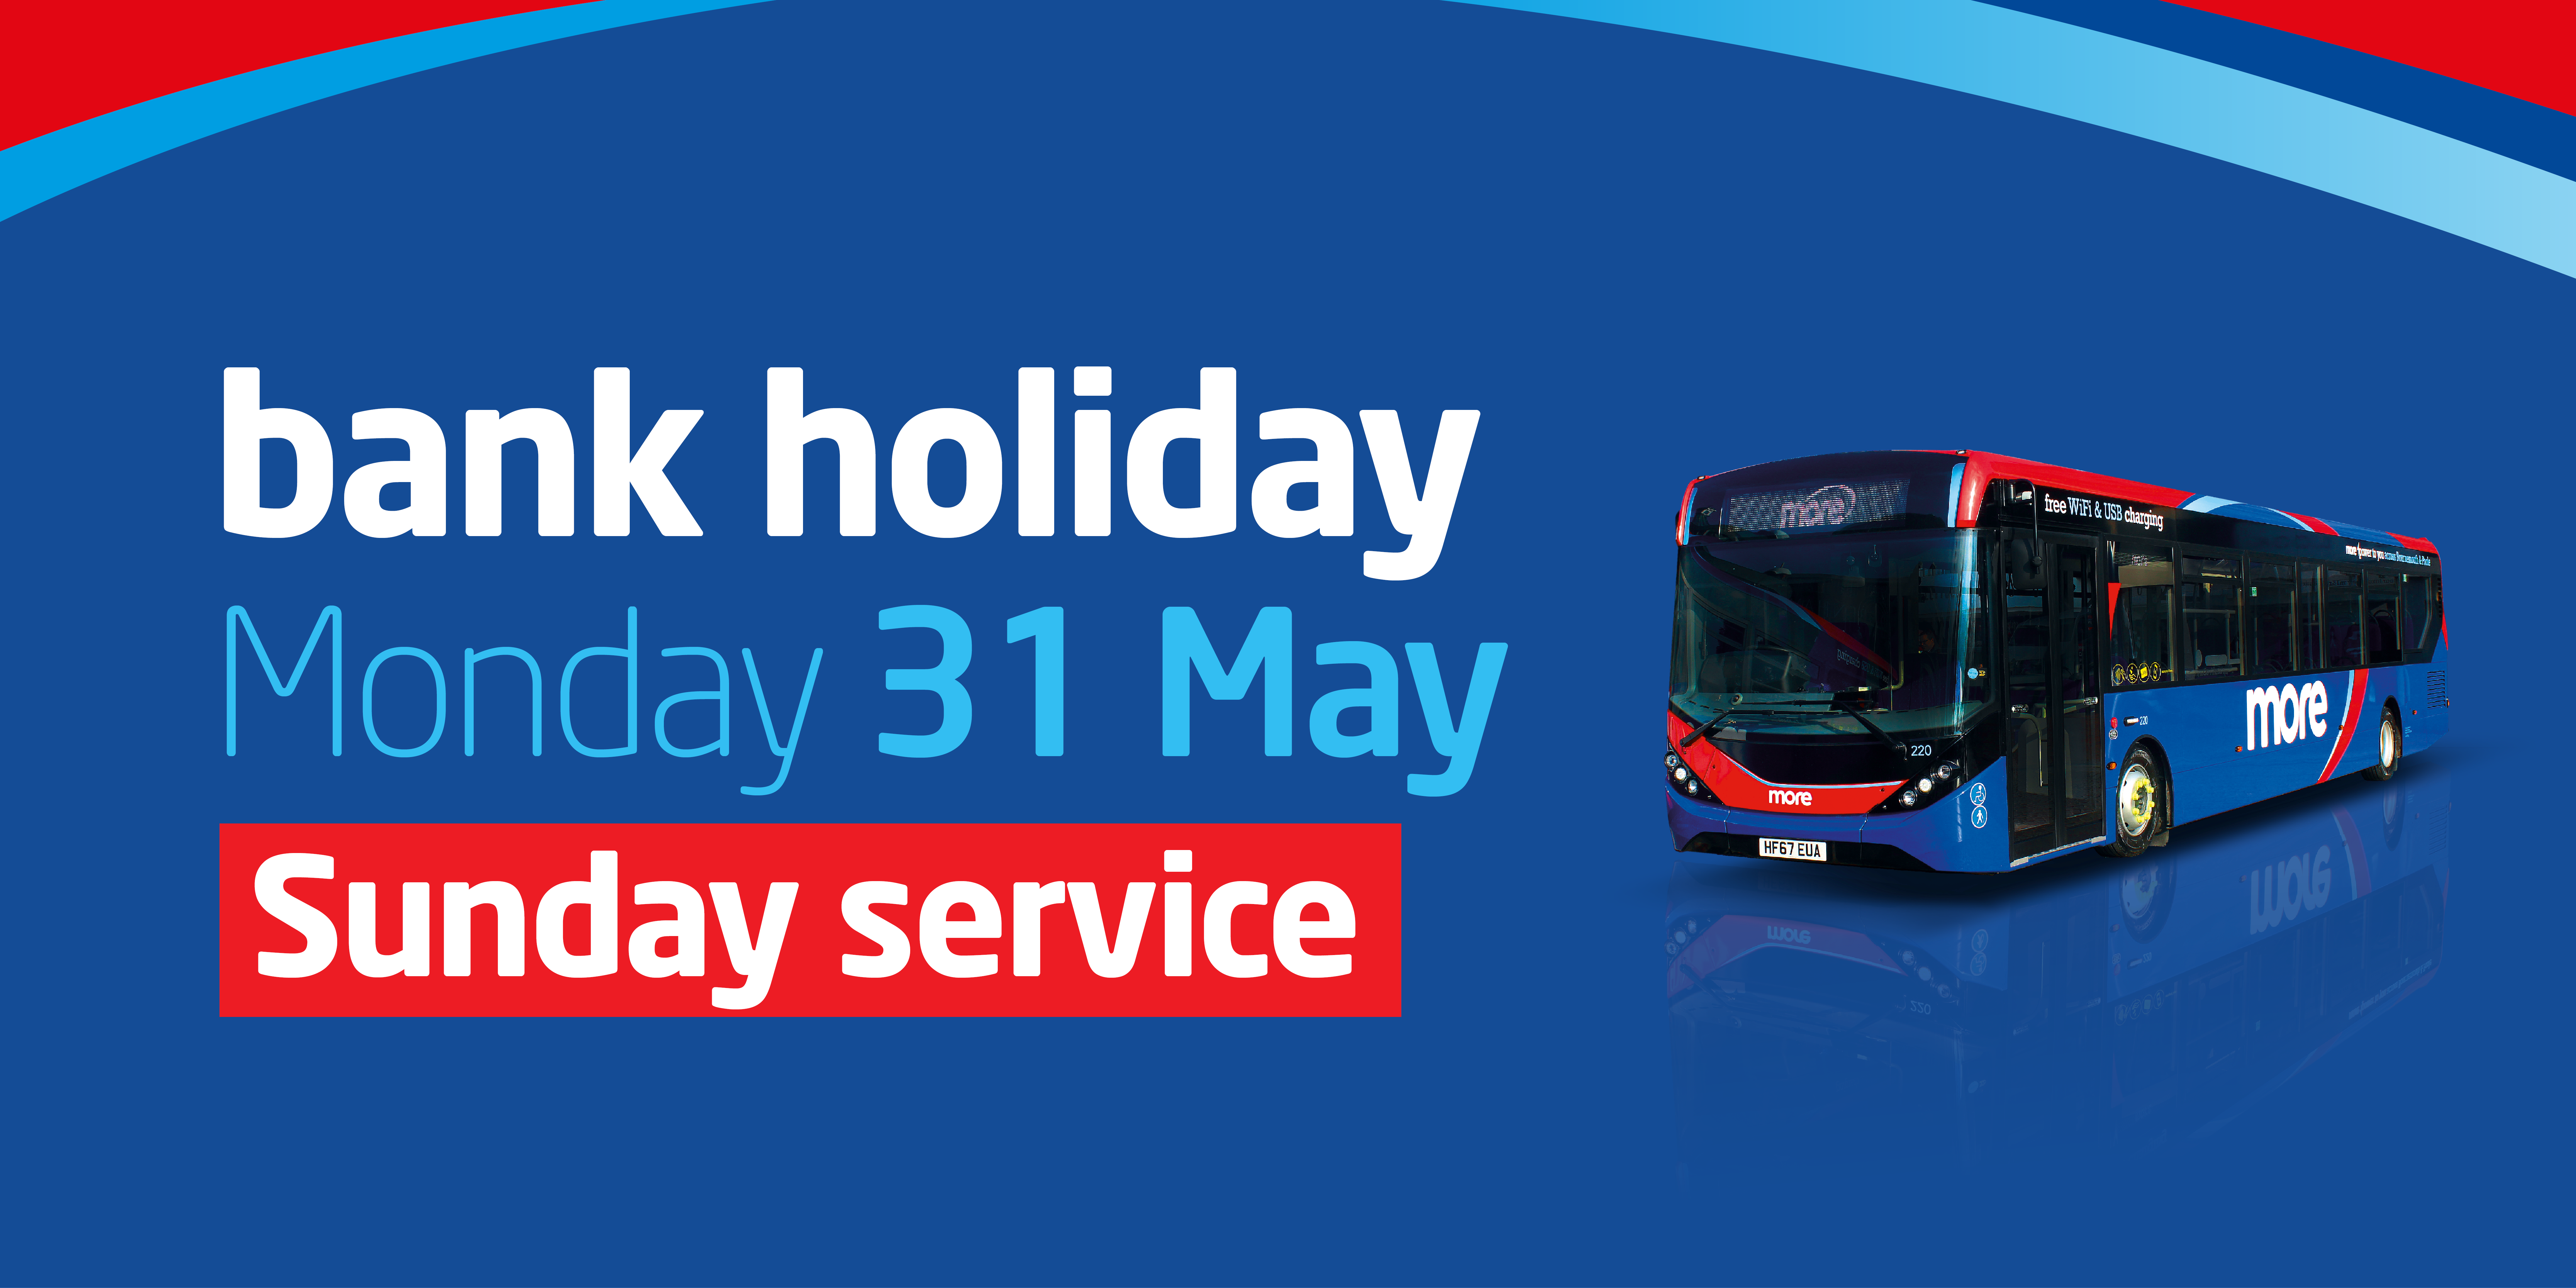 An image of a bus with information about the bank holiday's sunday service